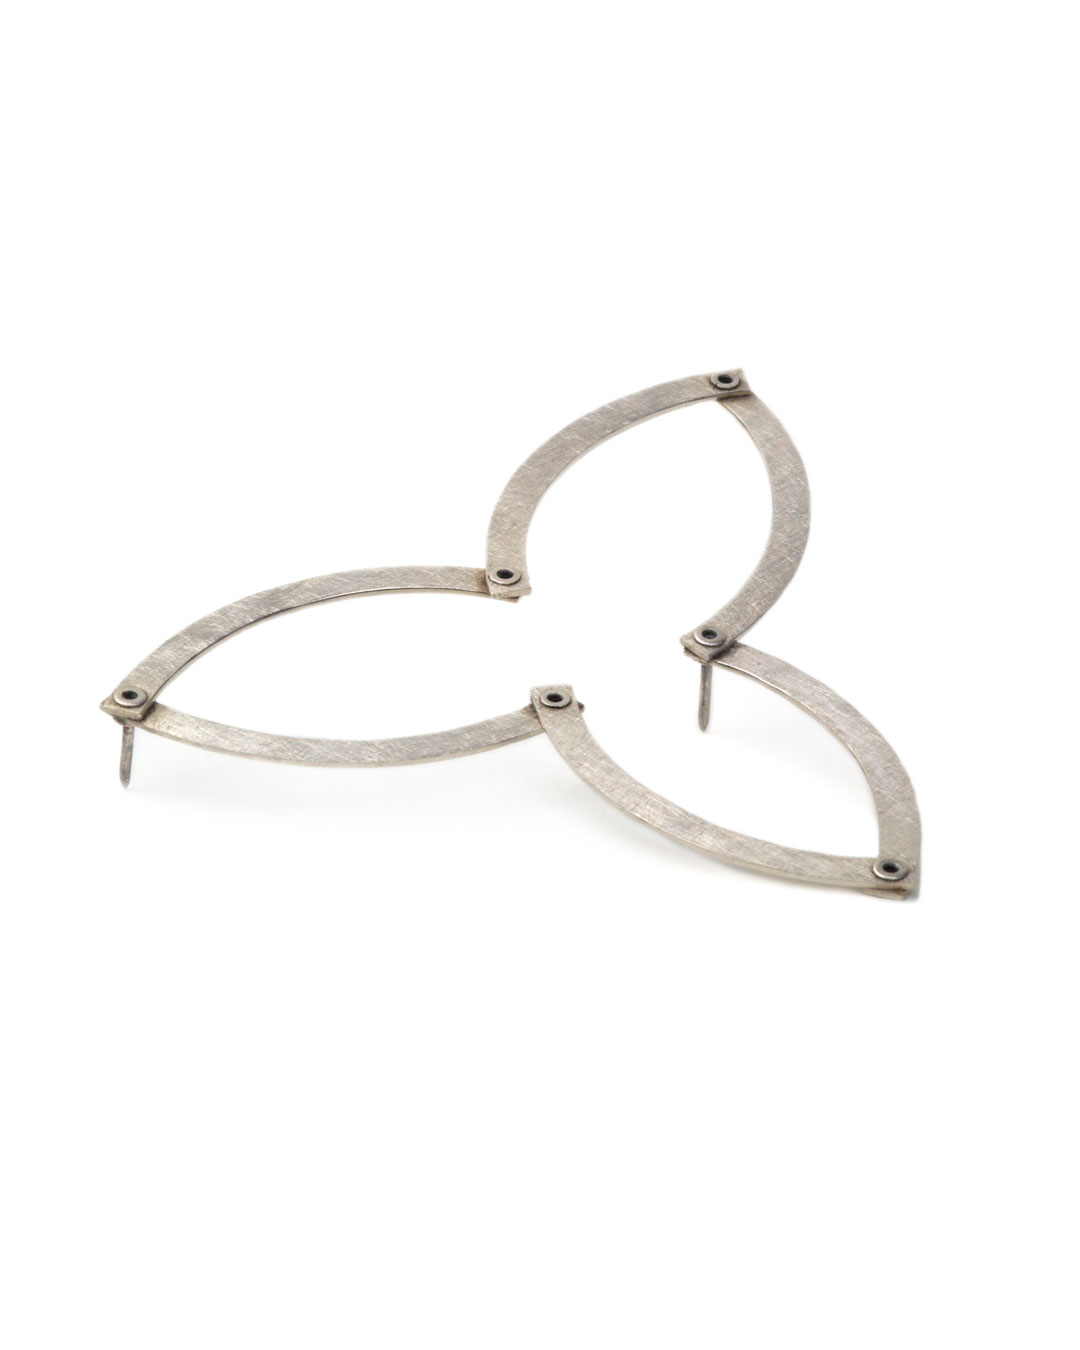 Karola Torkos, Bloom, 2006/2007, brooch; silver, 67 x 67 x 1 mm, €390